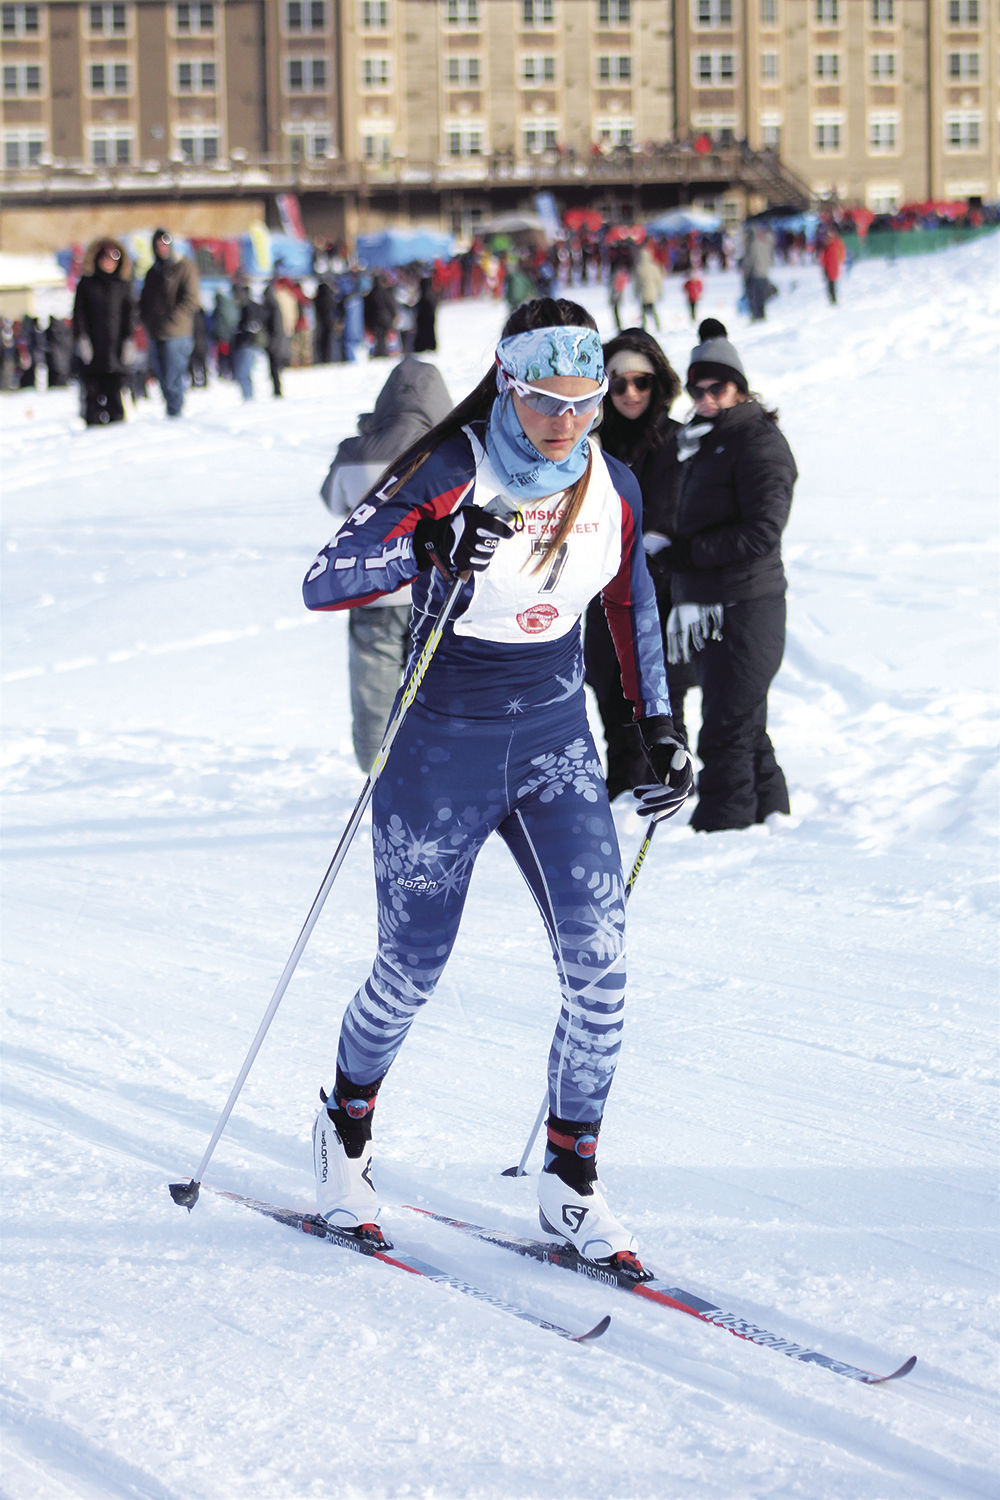 Two local Nordic skiers earn All-State